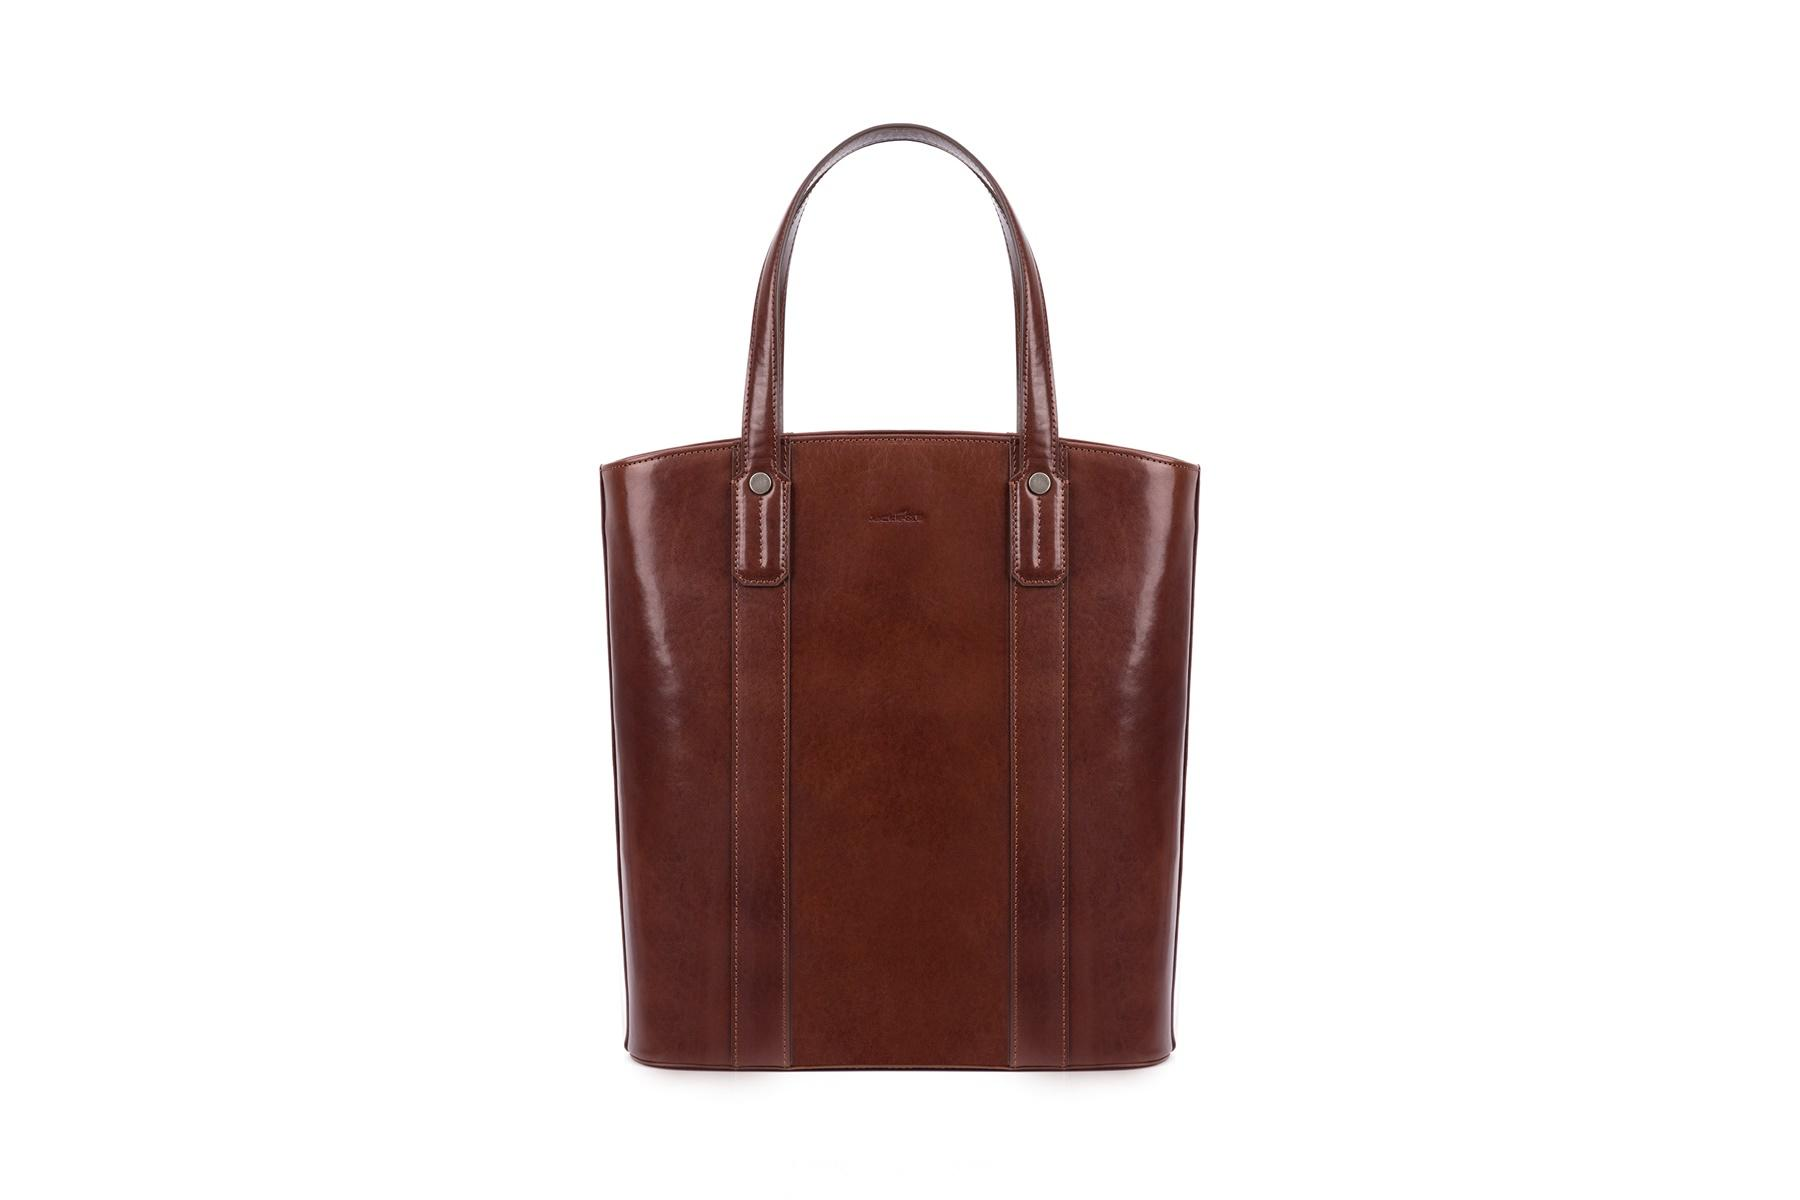 Tote leather handle with zipper closure